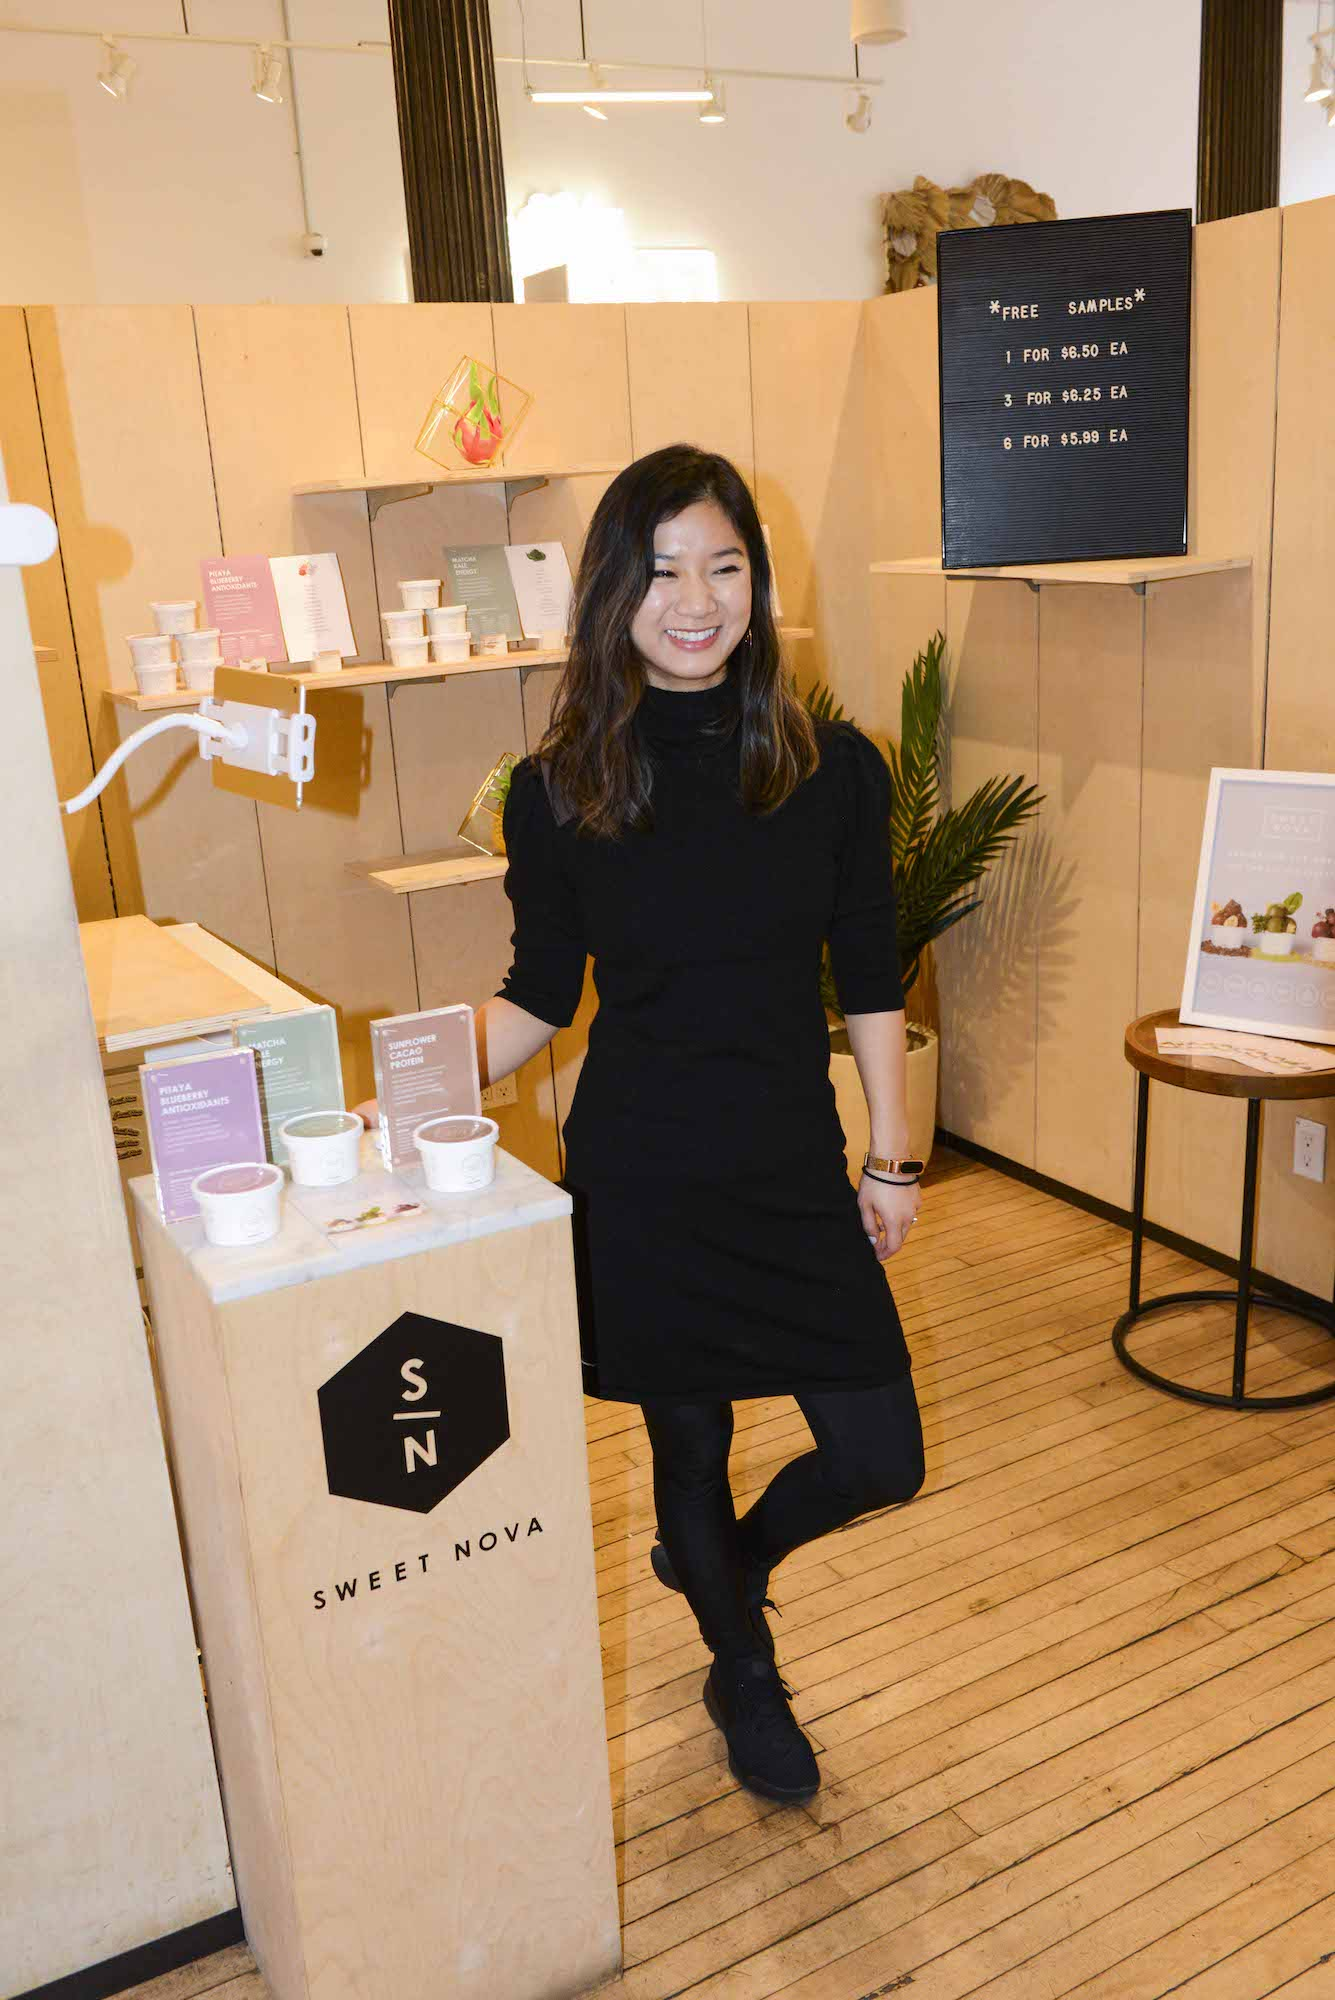 Caroline Tseng, Founder and CEO of Sweet Nova. Photo taken by Liz Barclays